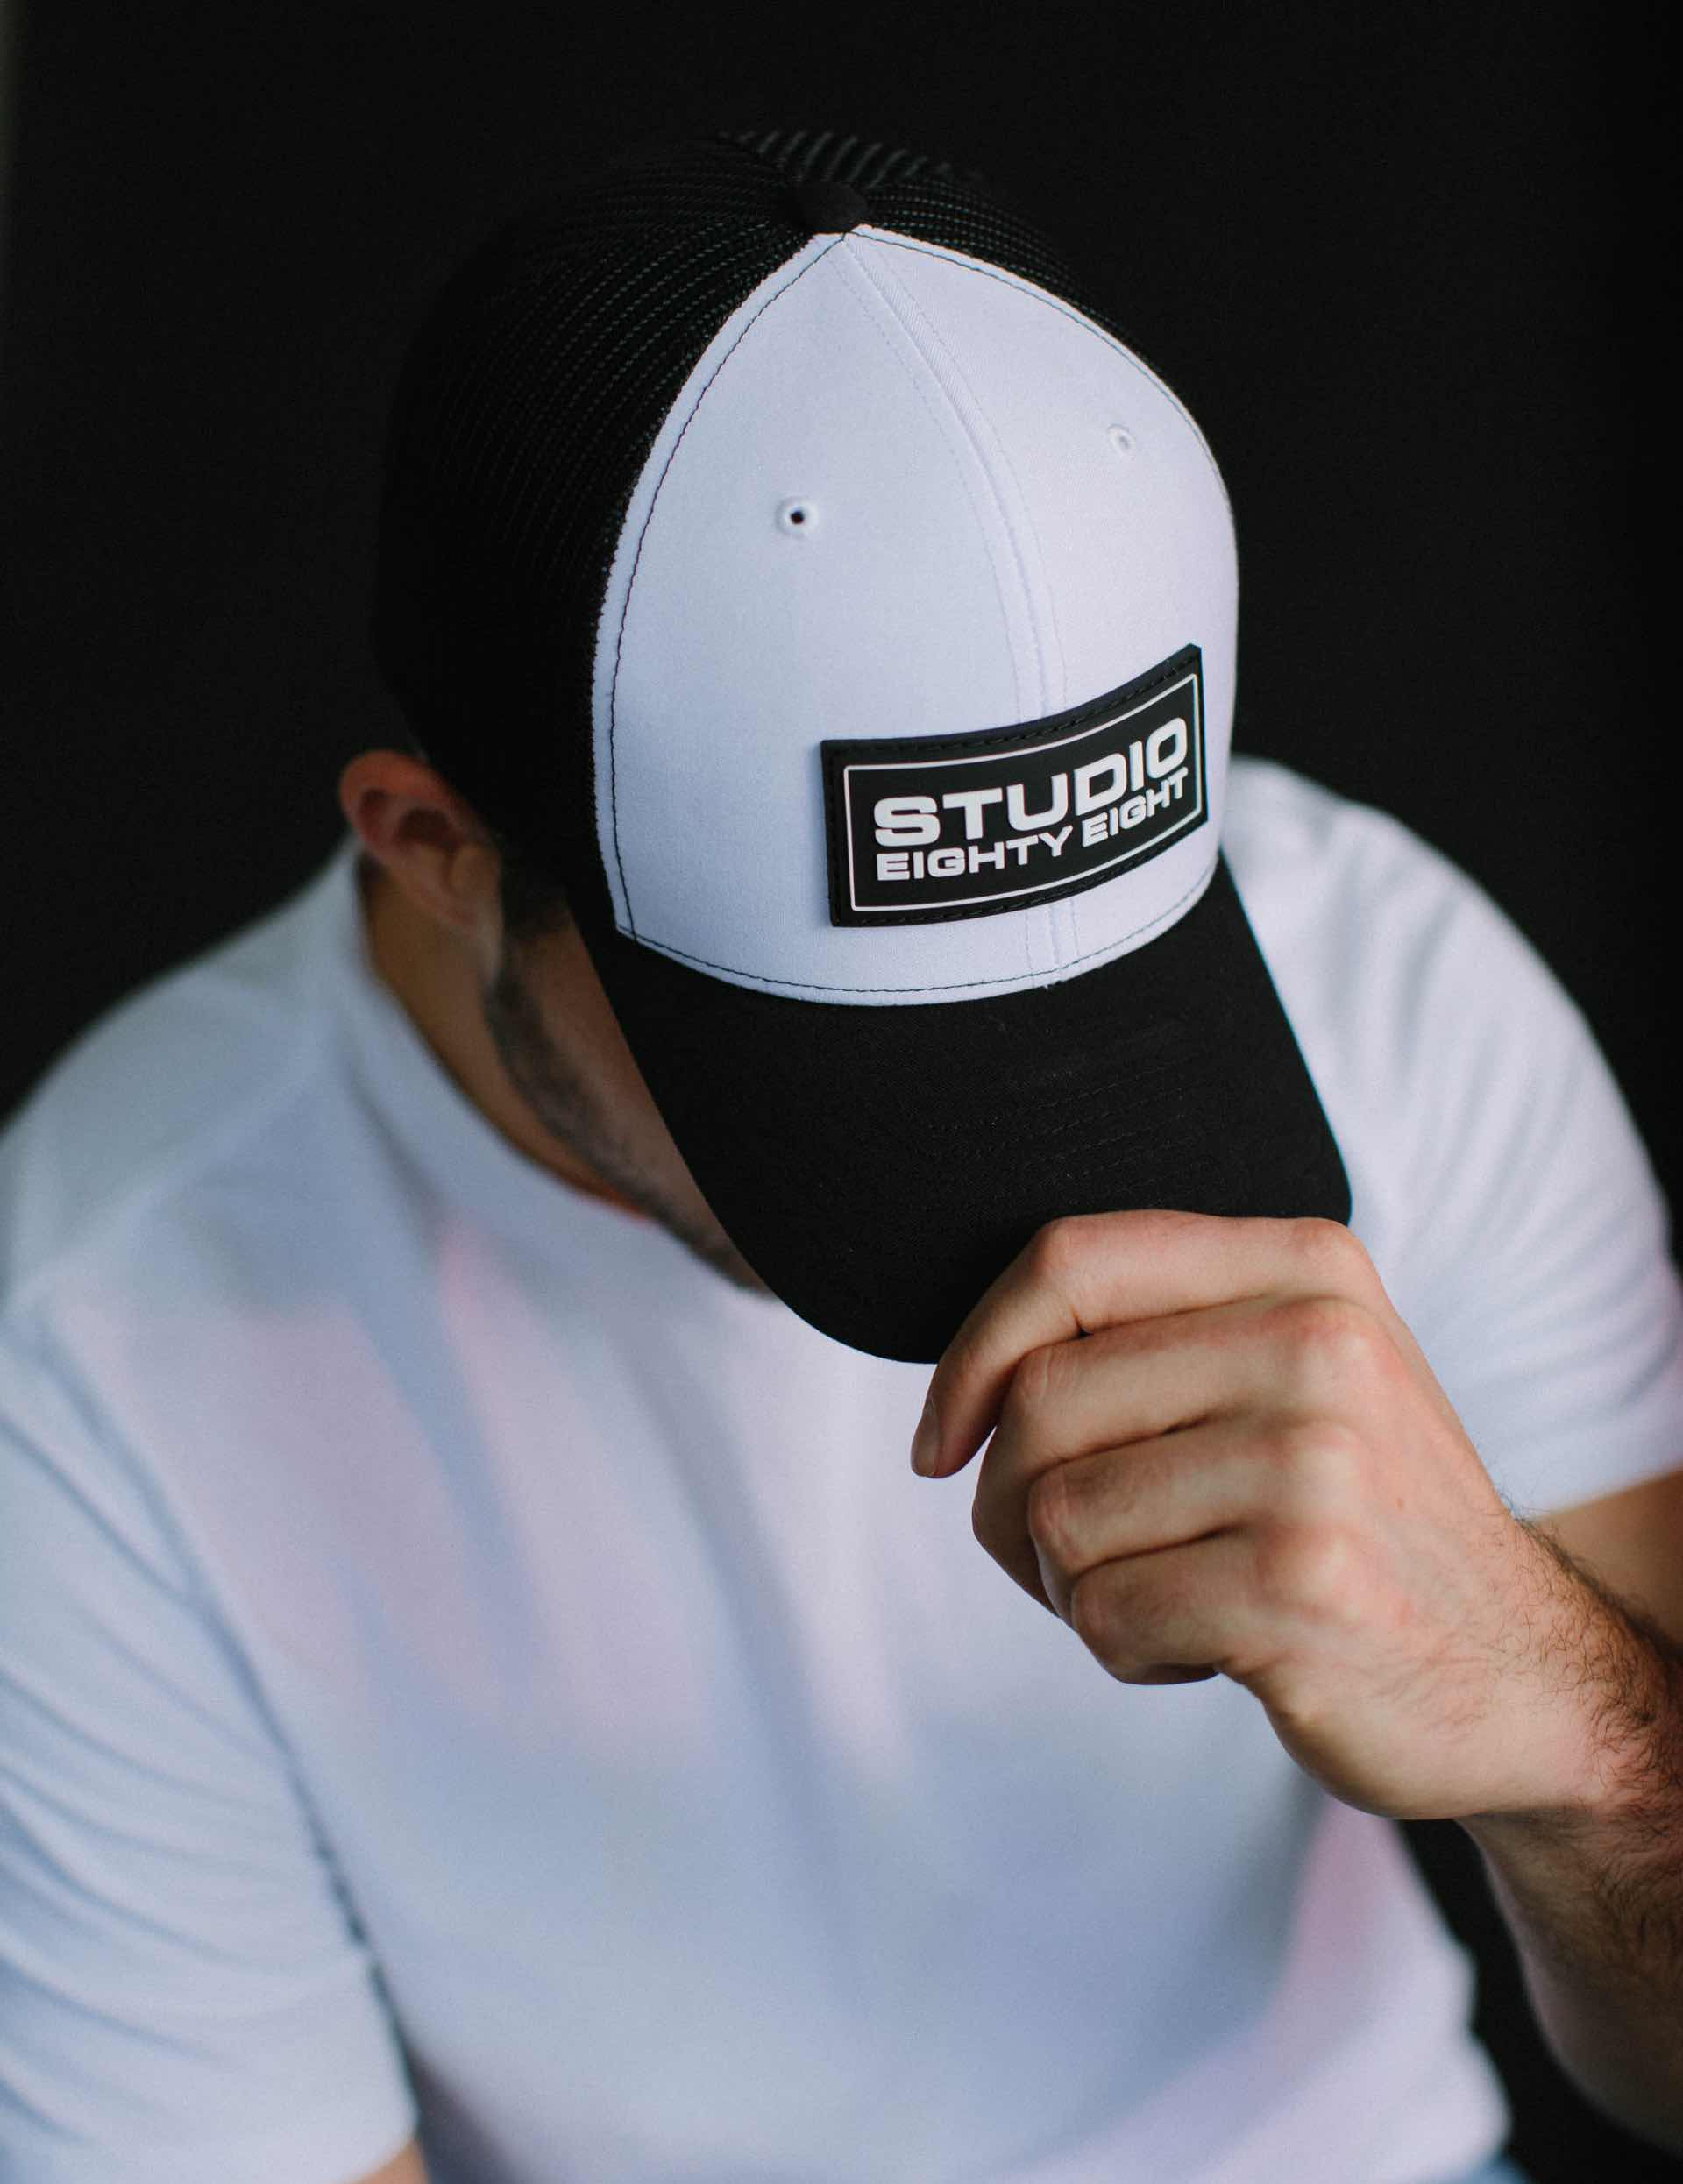 Close up photo of a man wearing a Studio EightyEight hat.